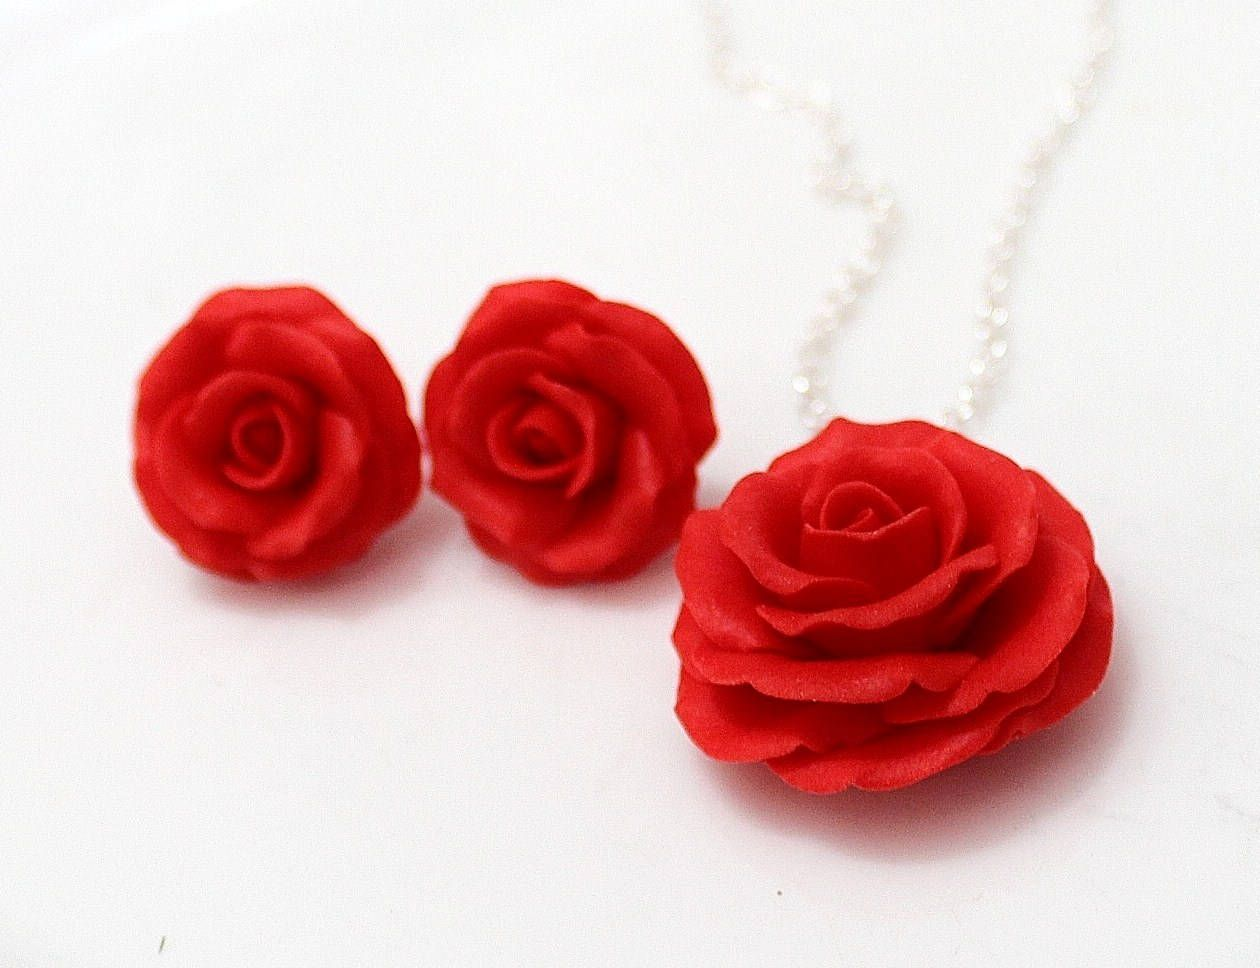 Set Red Rose Necklace And Earrings Red Flower Necklace Red Rose Necklace Red Rose Earrings Wedding Red Flower Necklace Red Flower Earrings Flower Jewellery